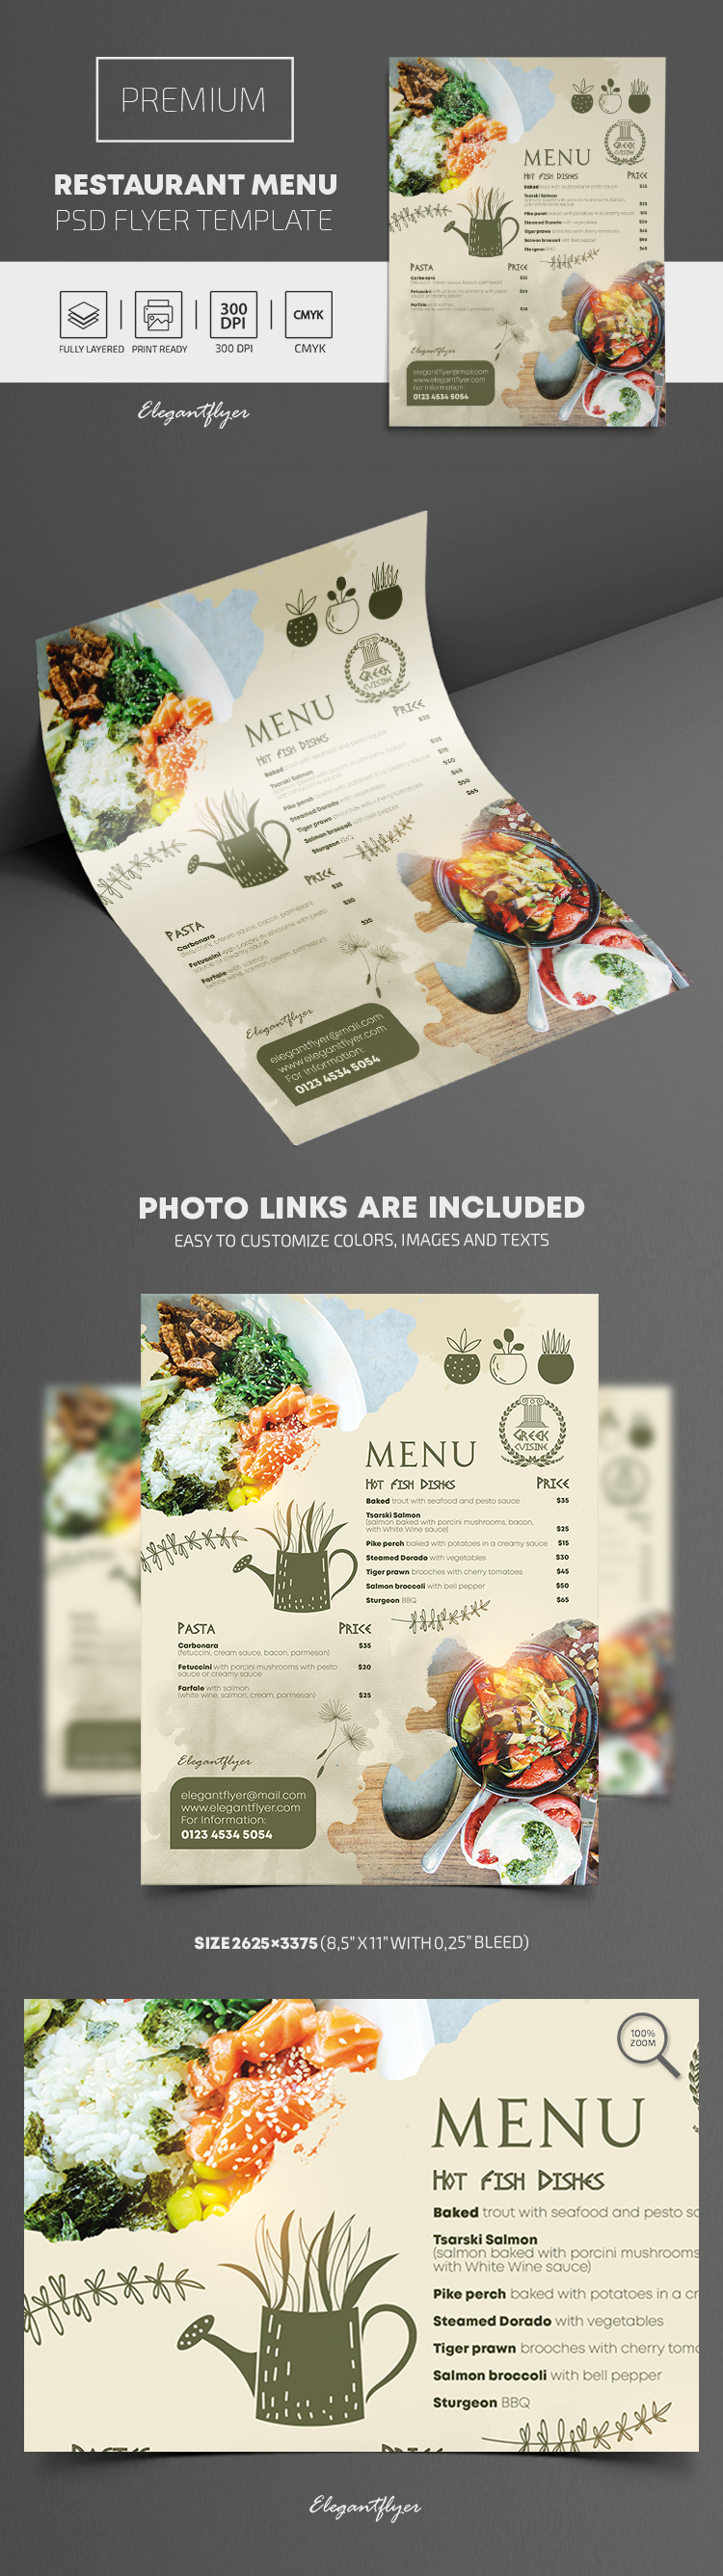 Restaurant Menu – Premium PSD Flyer Template